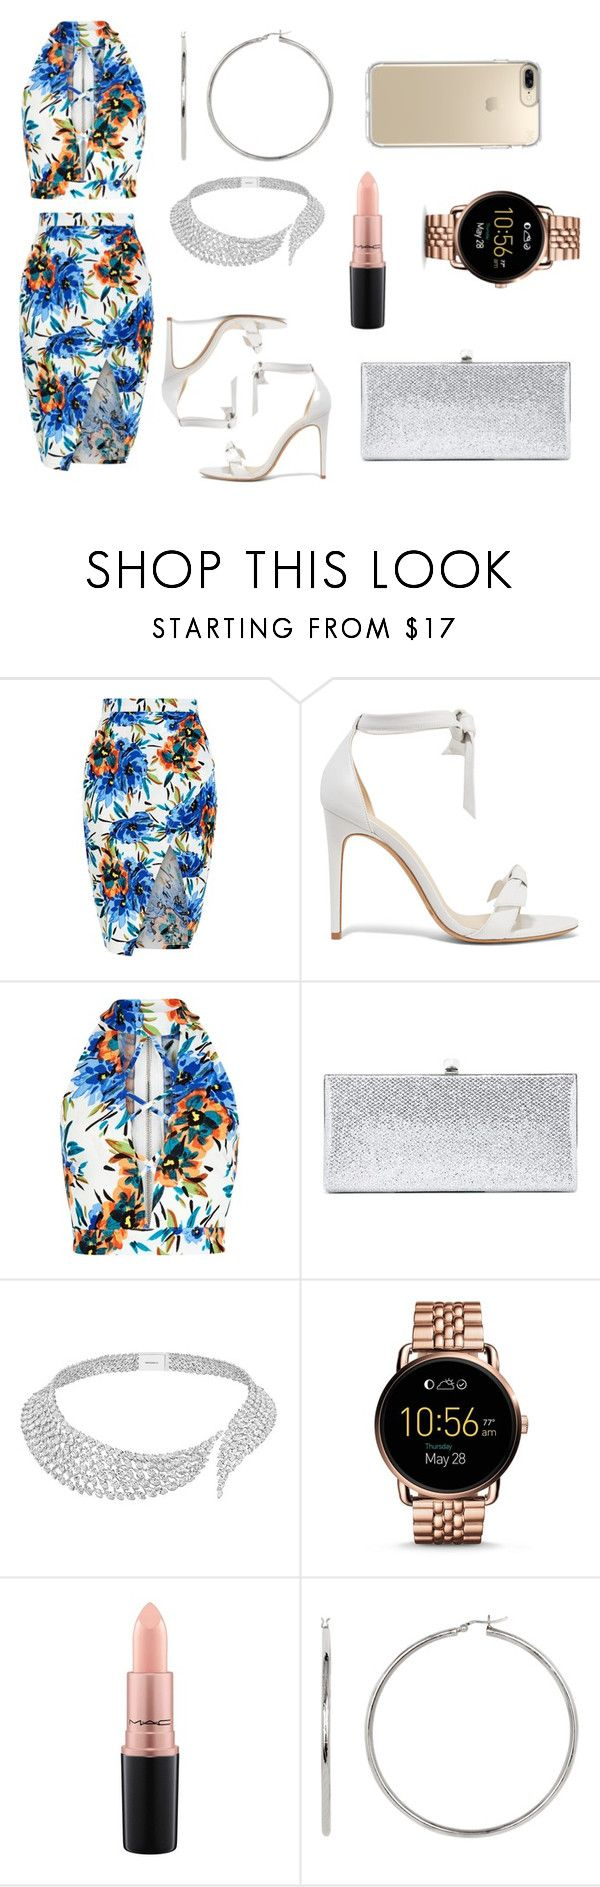 """""""Untitled #431"""" by carline7 ❤ liked on Polyvore featuring New Look, Alexandre Birman, Jimmy Choo, Messika, FOSSIL, MAC Cosmetics and Speck"""